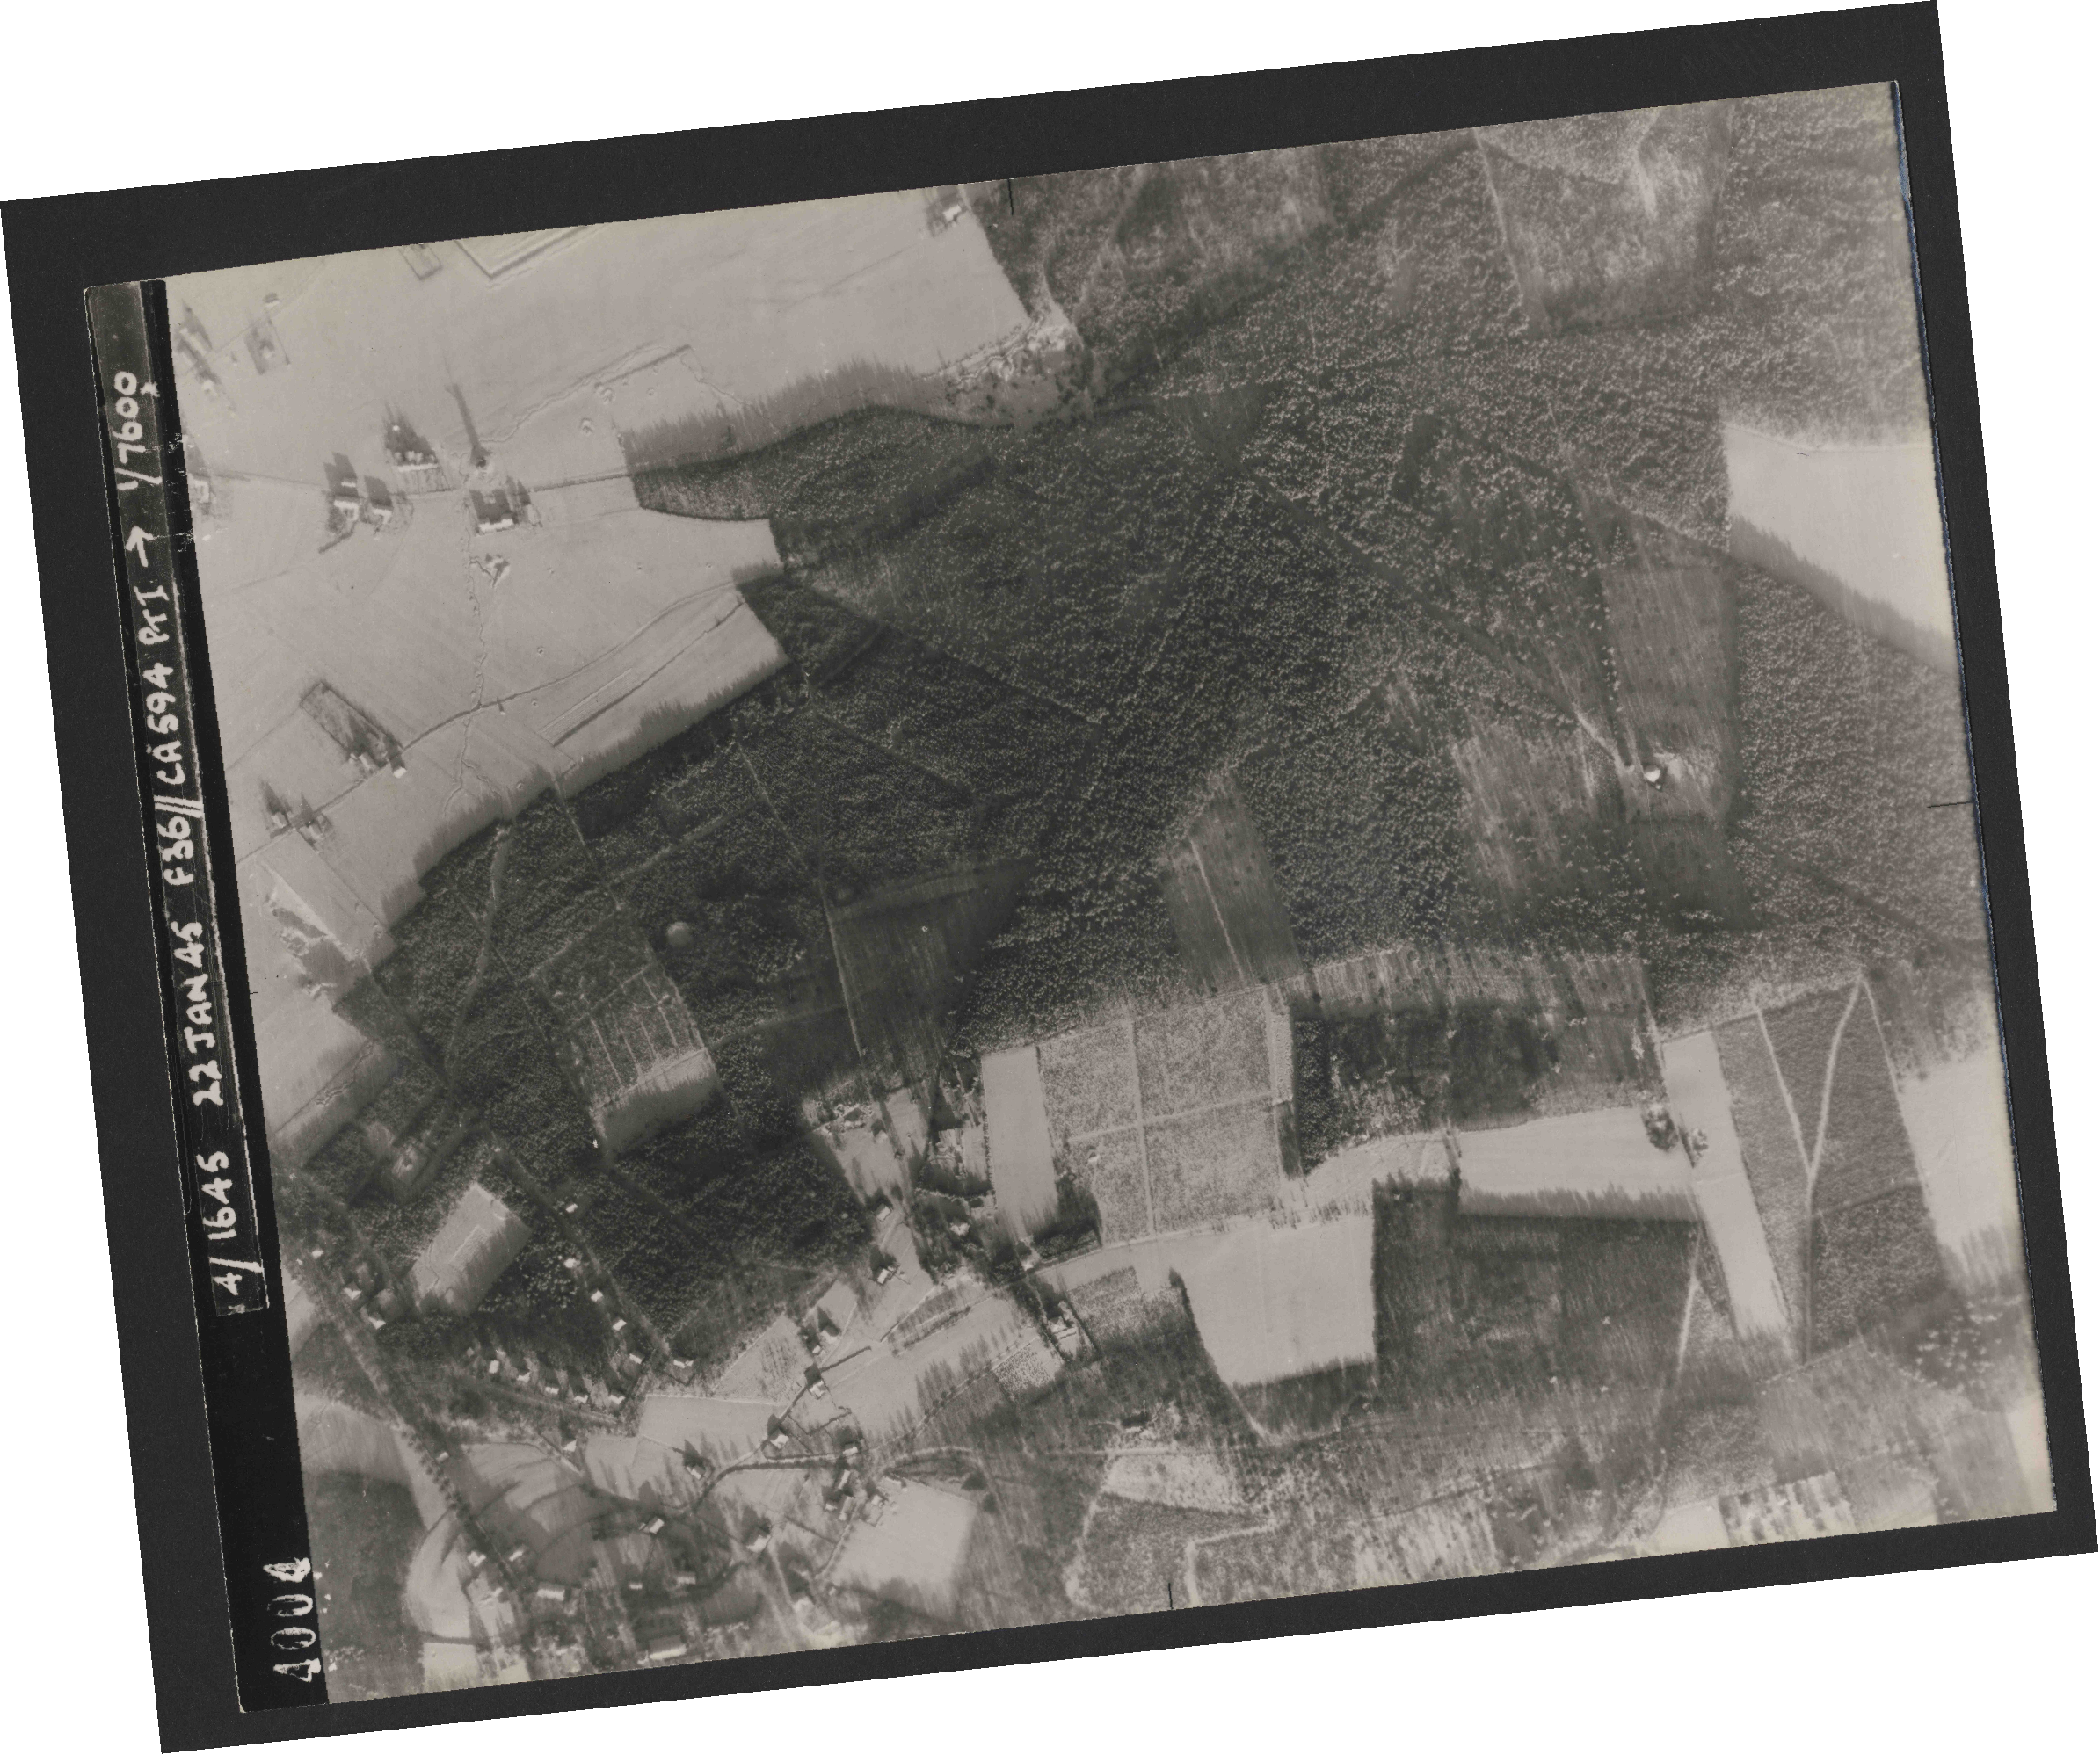 Collection RAF aerial photos 1940-1945 - flight 319, run 02, photo 4004